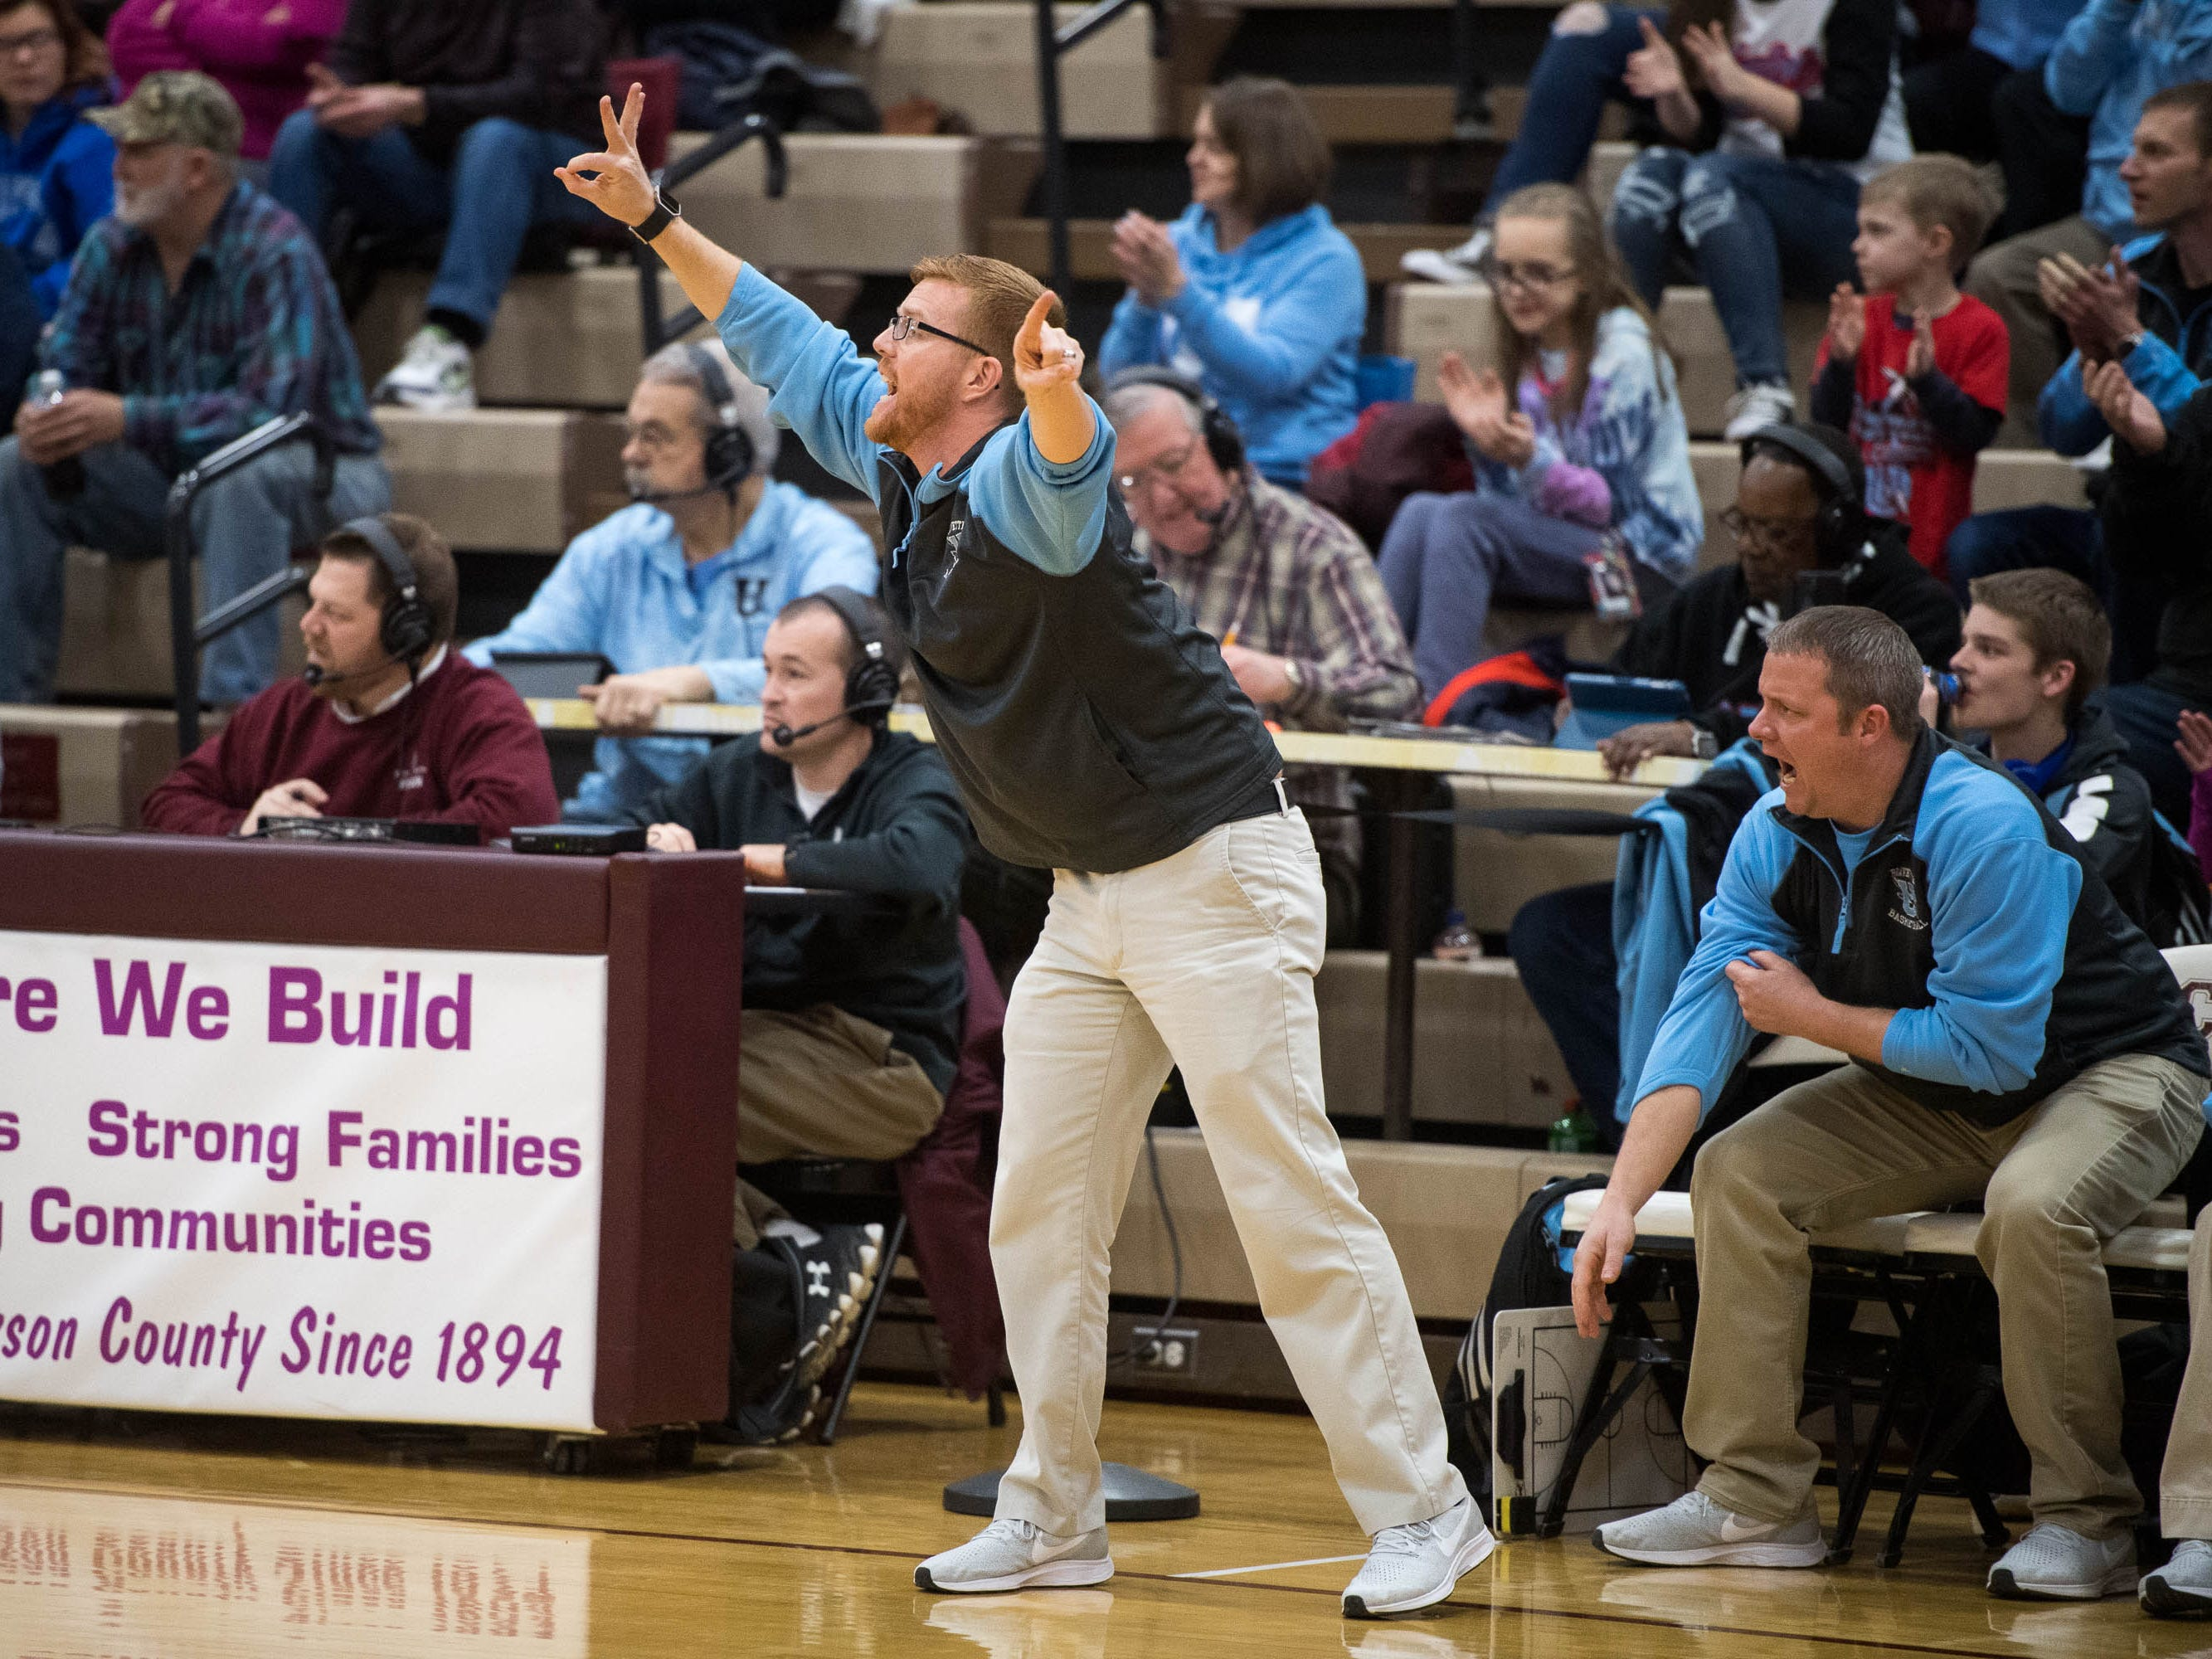 Union County head coach Derek Phillips instructs his team from the sideline as district rivals Union County Bravettes play the Henderson County Lady Colonels at Colonel Gym in Henderson Tuesday, January 29, 2019.